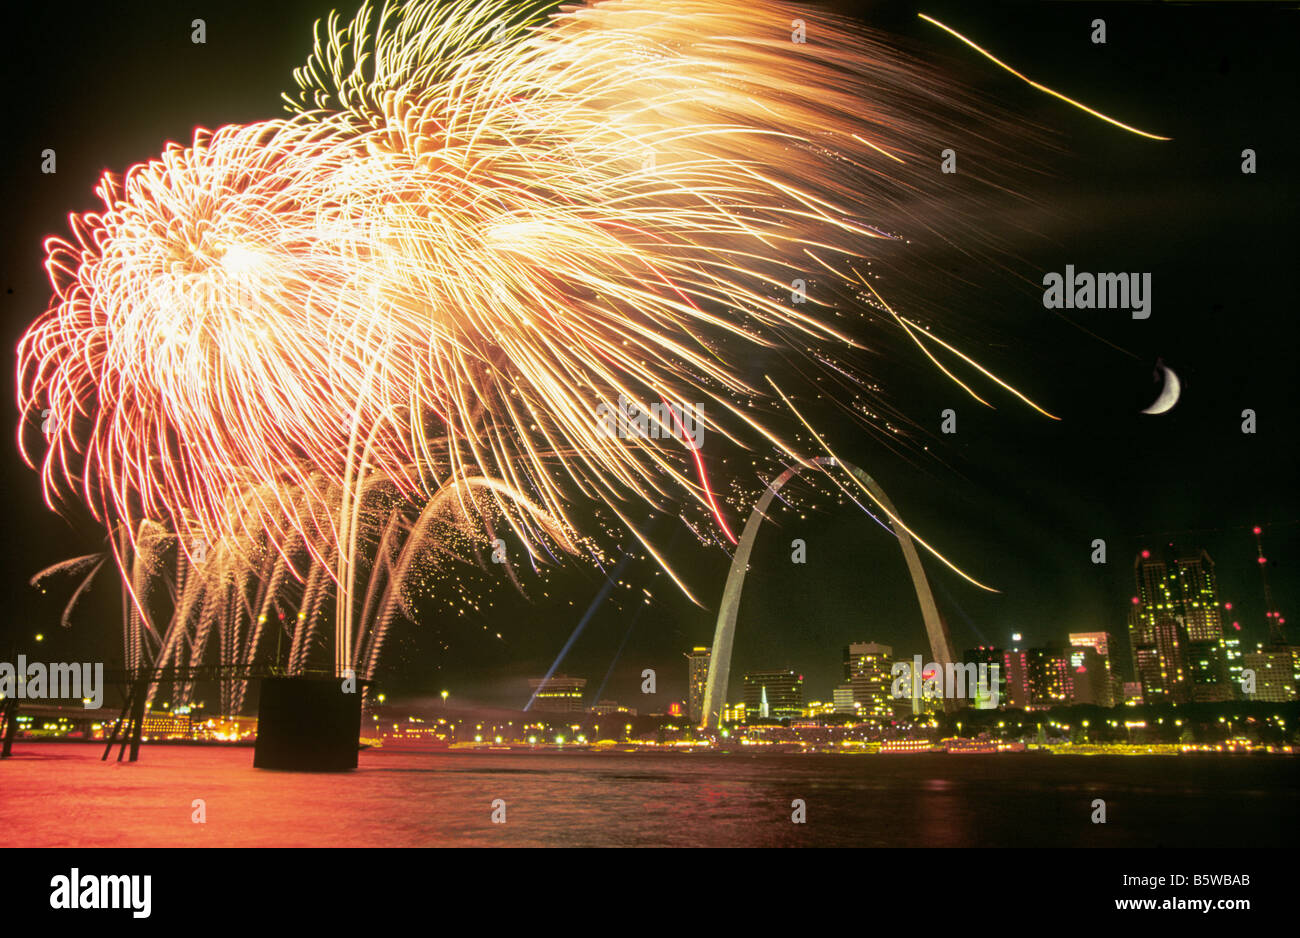 Missouri July Stock Photos & Missouri July Stock Images - Alamy